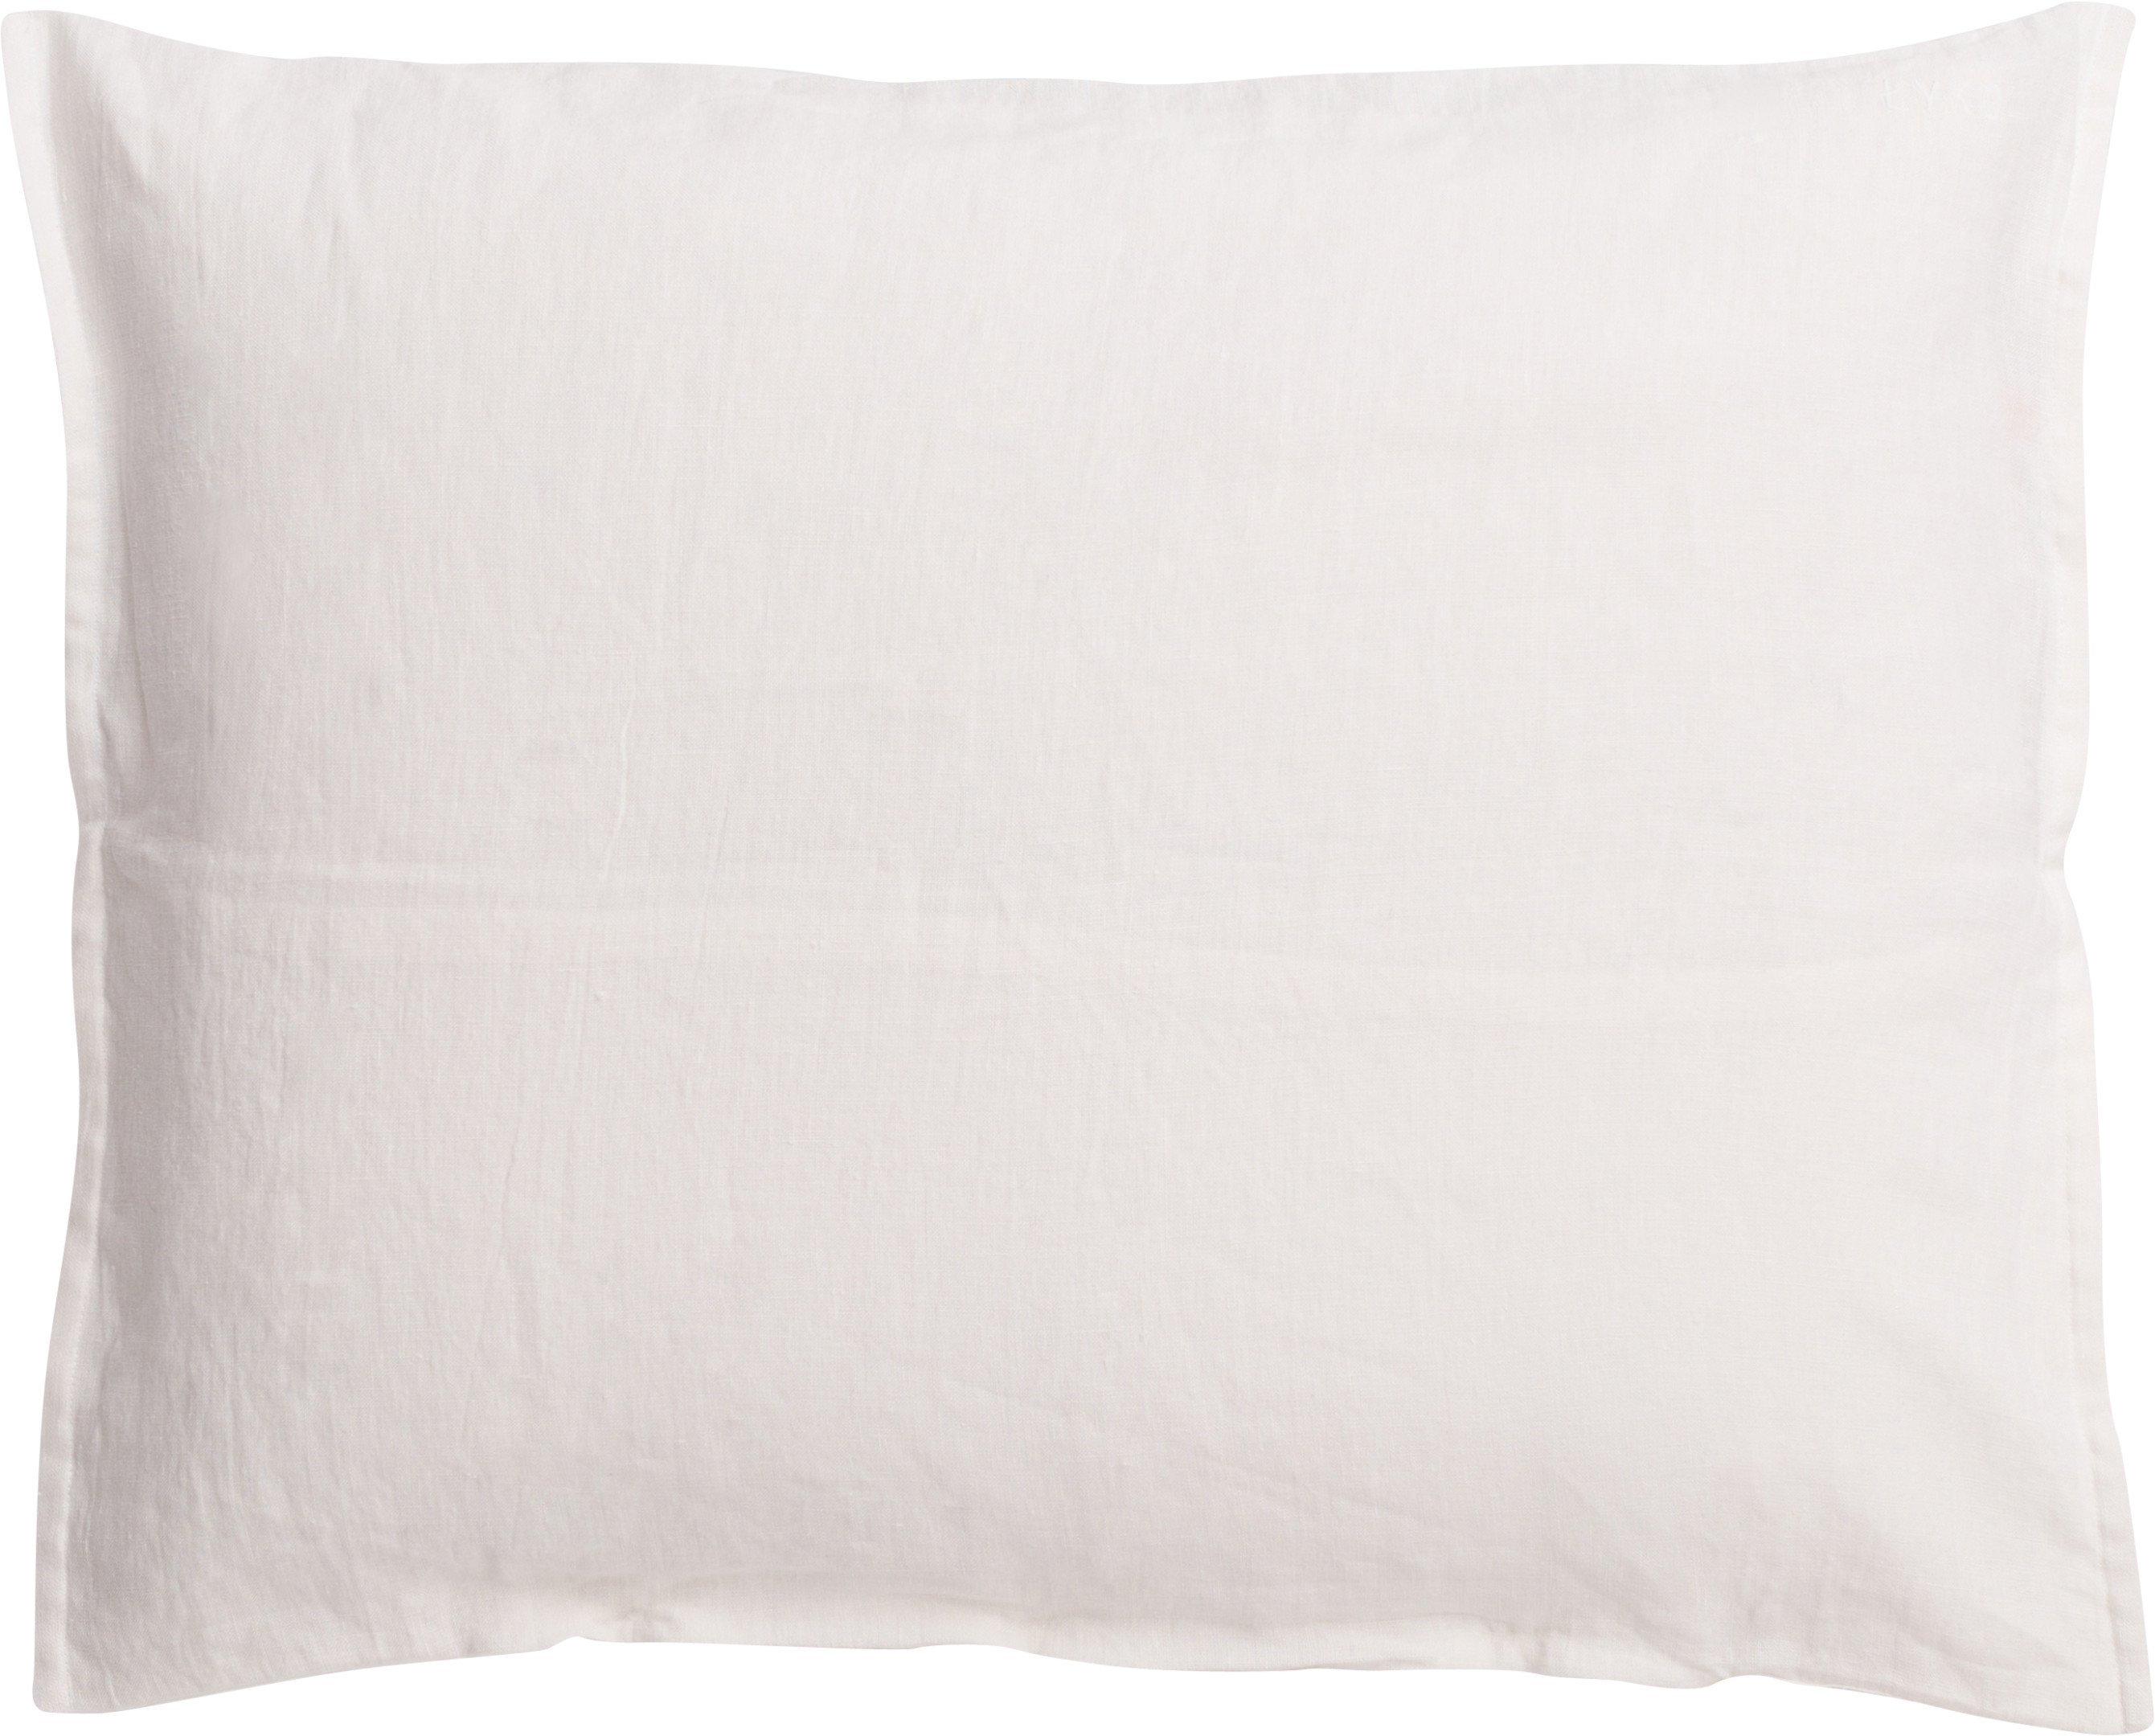 Linen Pillowcase 70x80 cm Cream, Łyko